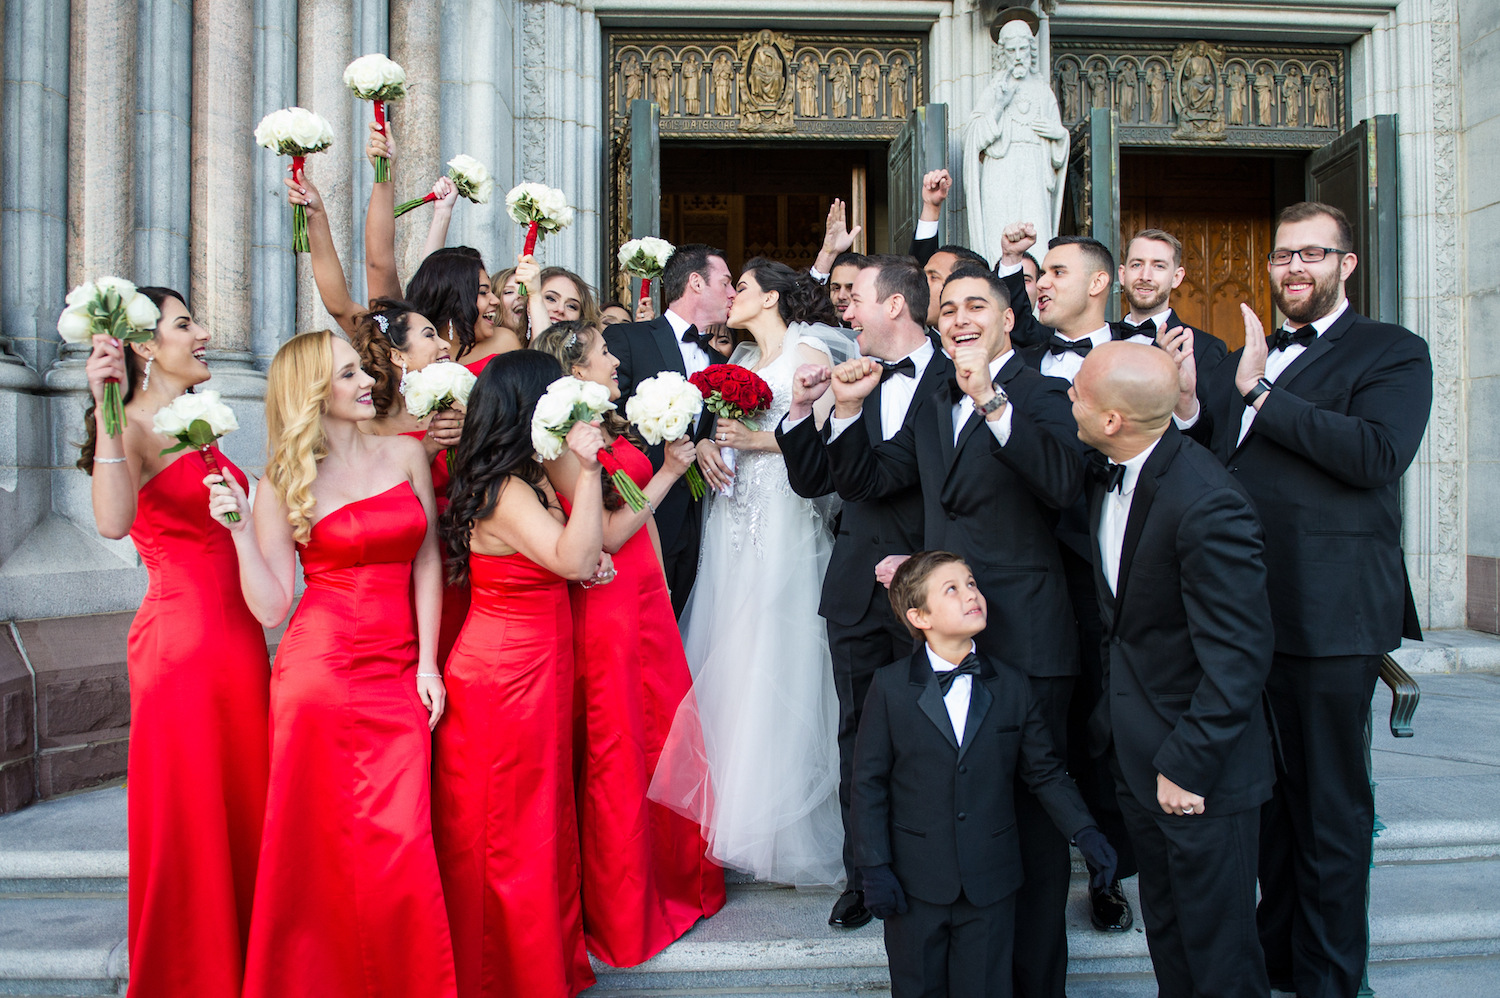 christian&jessica-kissing-outside-church-wedding-party-nj-photography